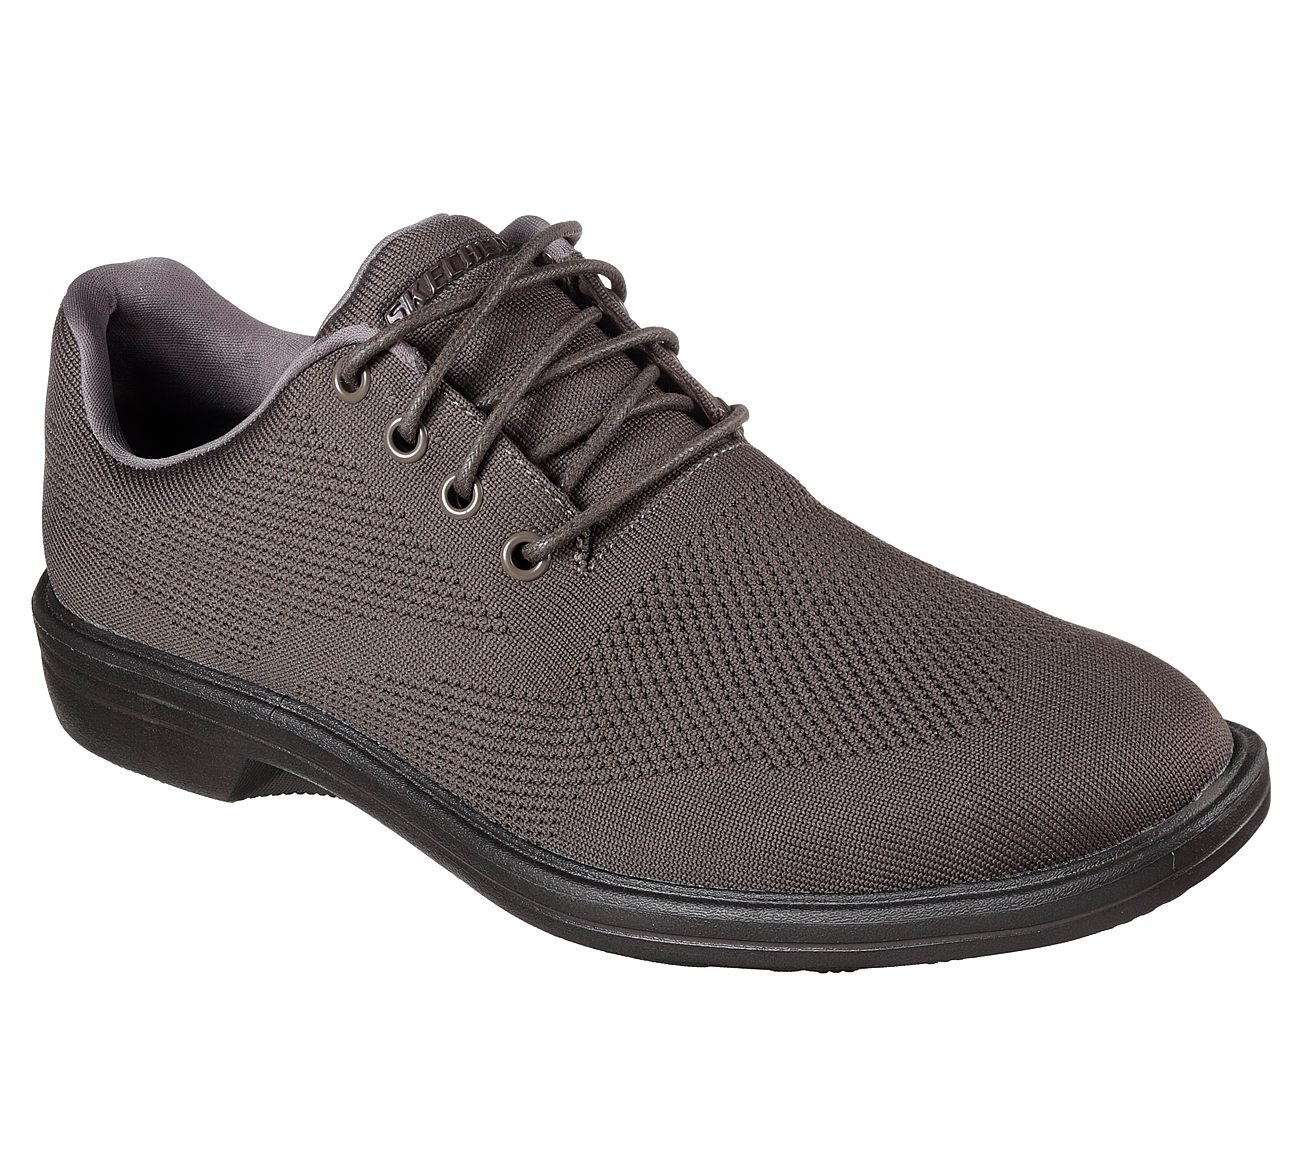 Skechers Lifestyle メンズ B075WTL47V 9 D(M) US|Taupe Canvas Taupe Canvas 9 D(M) US